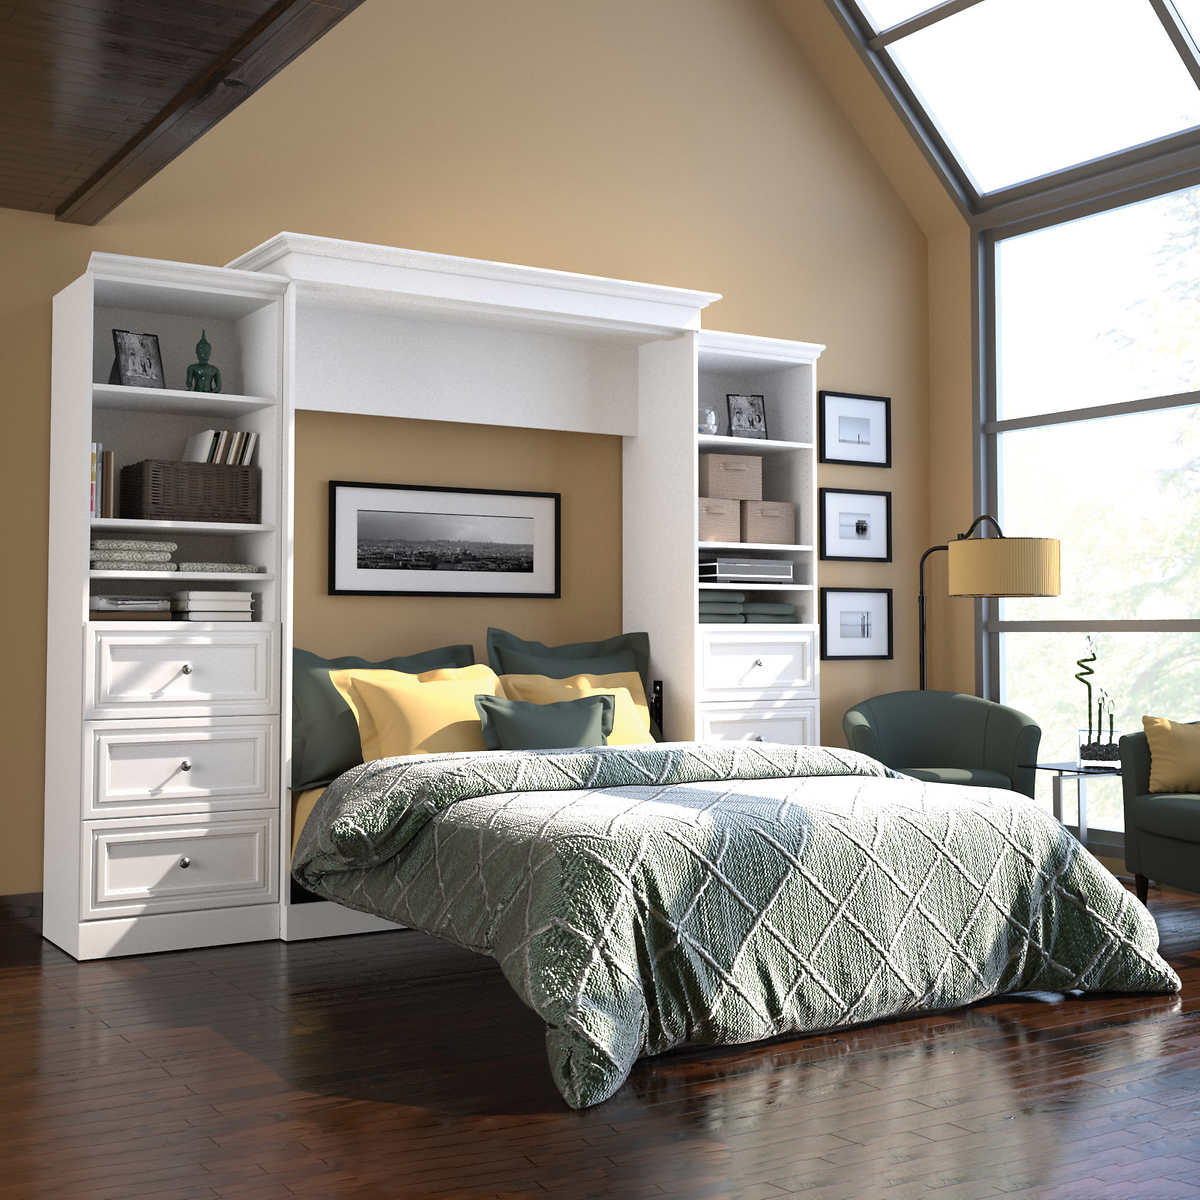 Bed frames with storage drawers - Bestar Audrea Queen Wall Bed In White With Two 25 Storage Units With Drawers